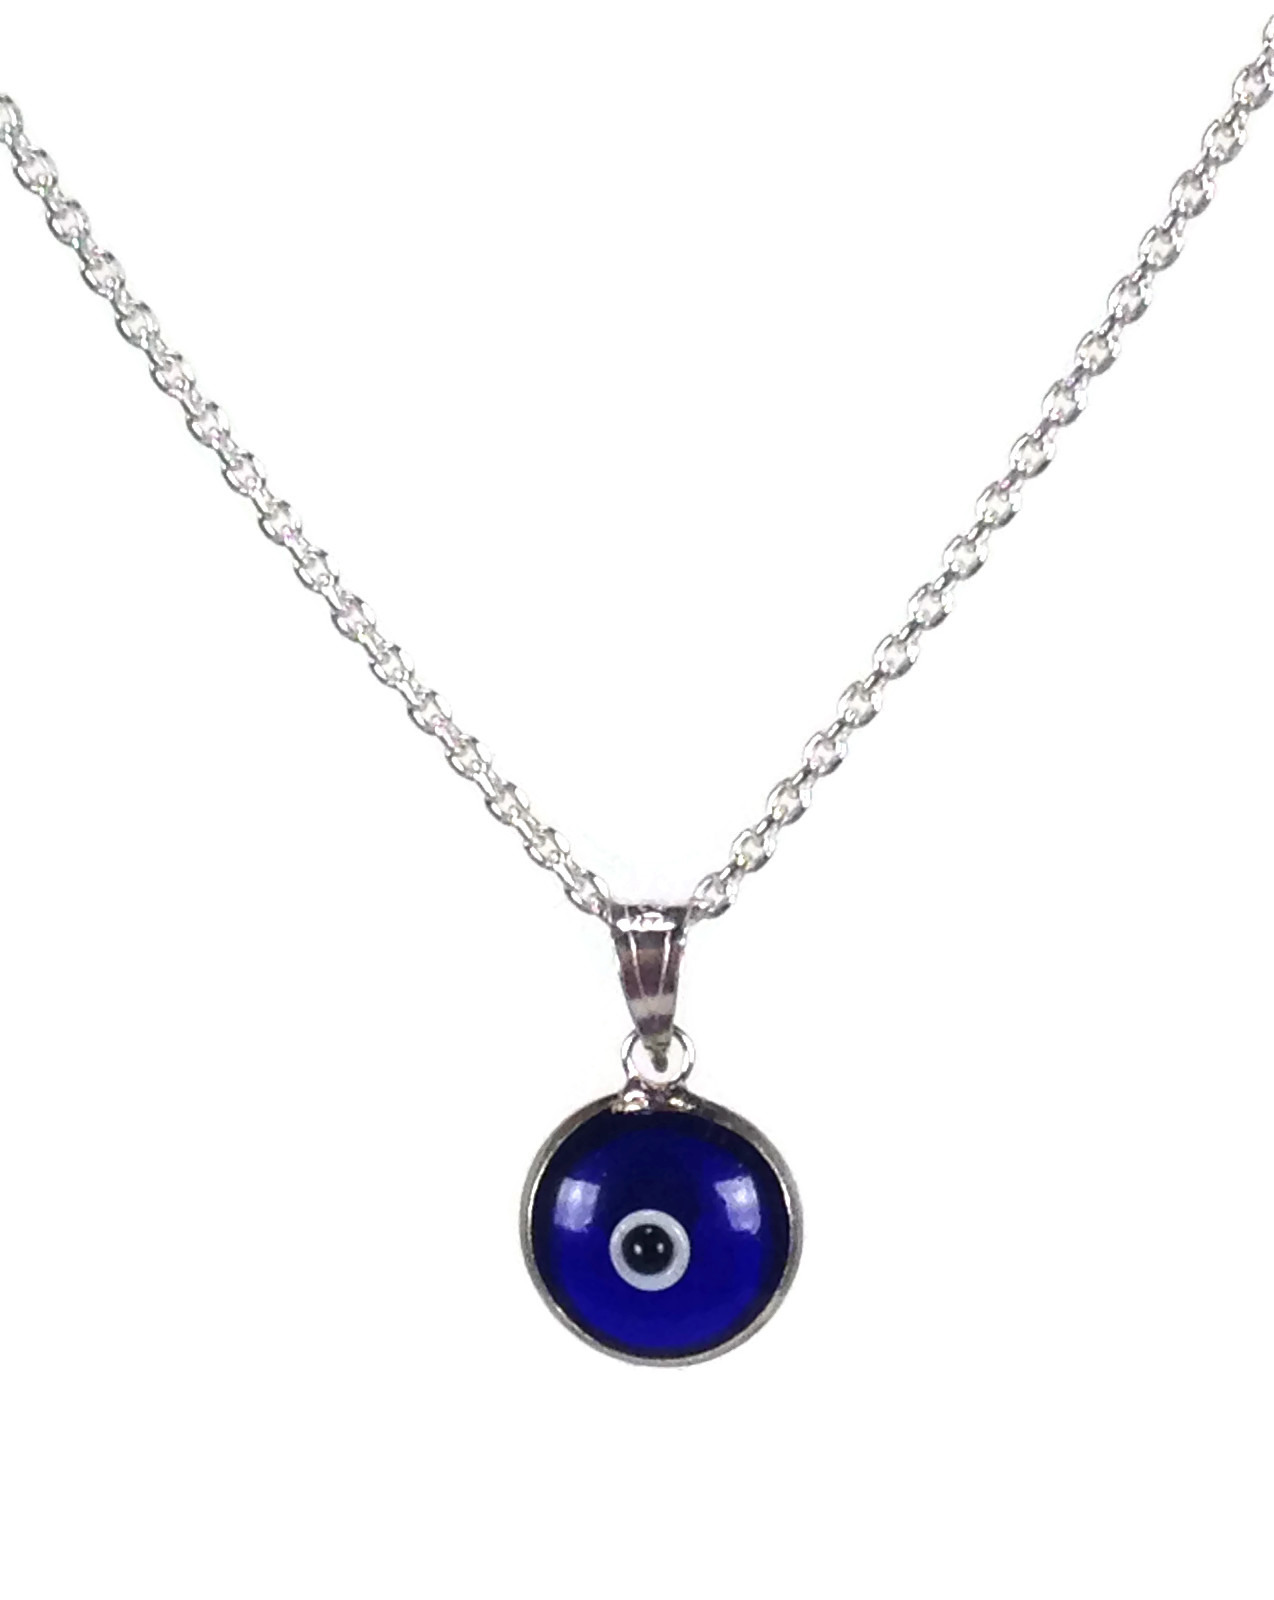 Evil eye necklace dark blue eye in 925 sterling silver sboeyes evil eye necklace aloadofball Images